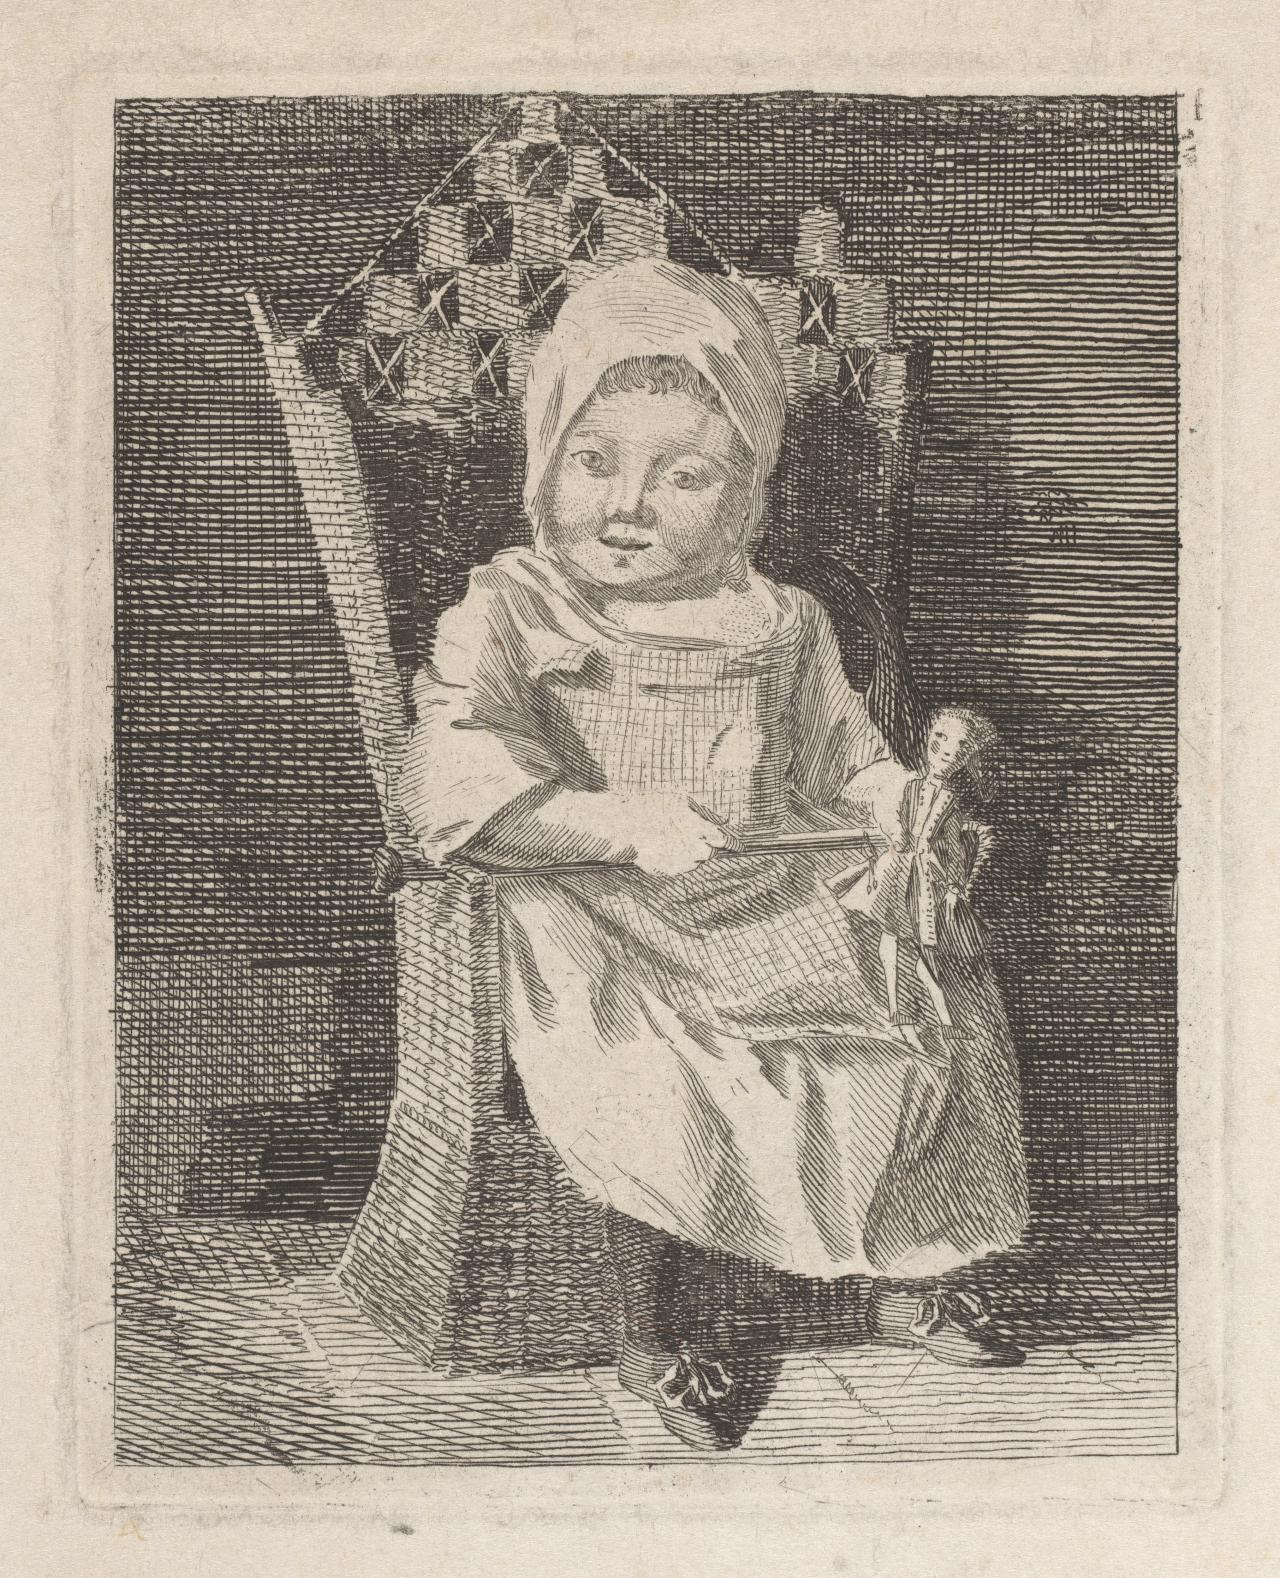 Seated child with doll